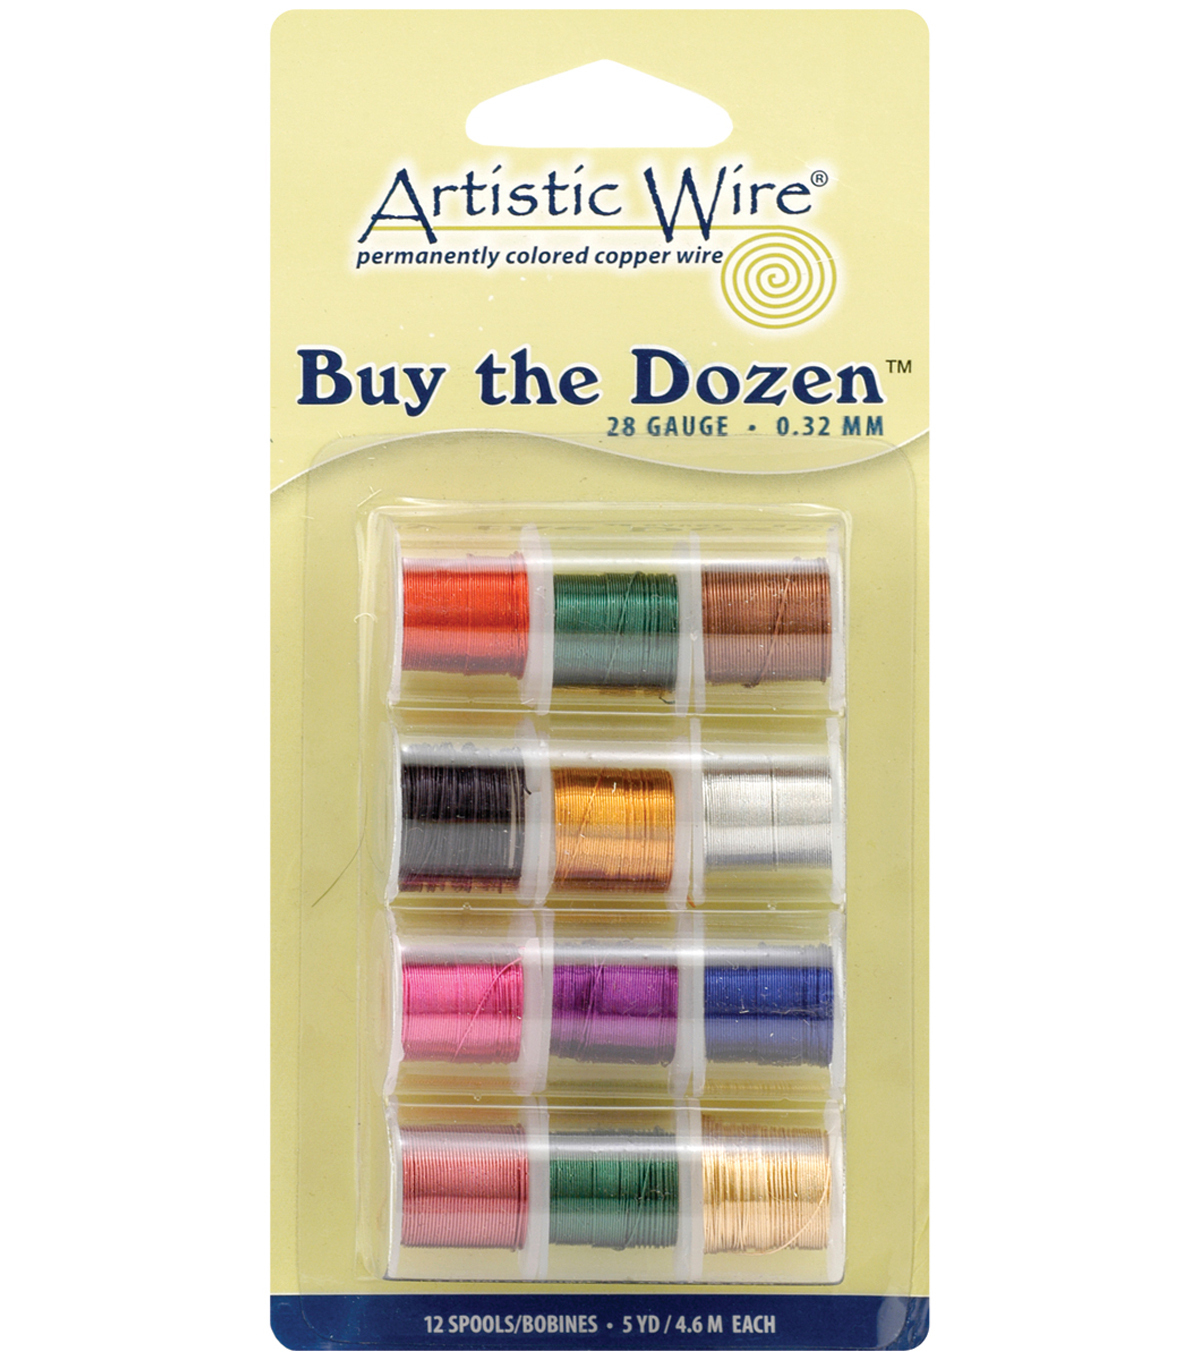 Artistic Wire Buy the Dozen Permanent Colored Wire-12PK/Assorted, 28 Gauge